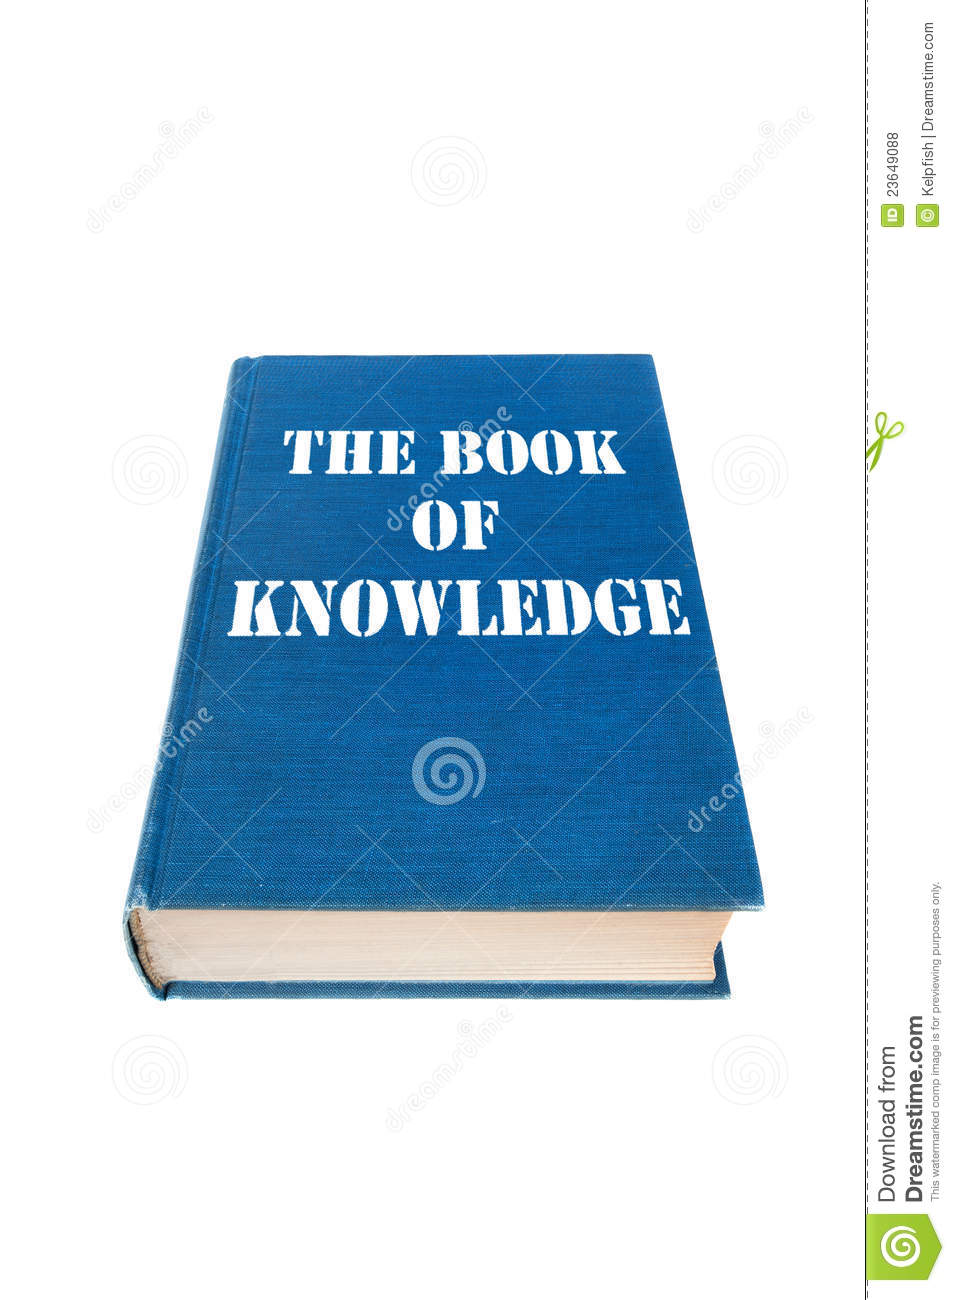 Book Of Knowledge Royalty Free Stock Photos - Image: 23649088